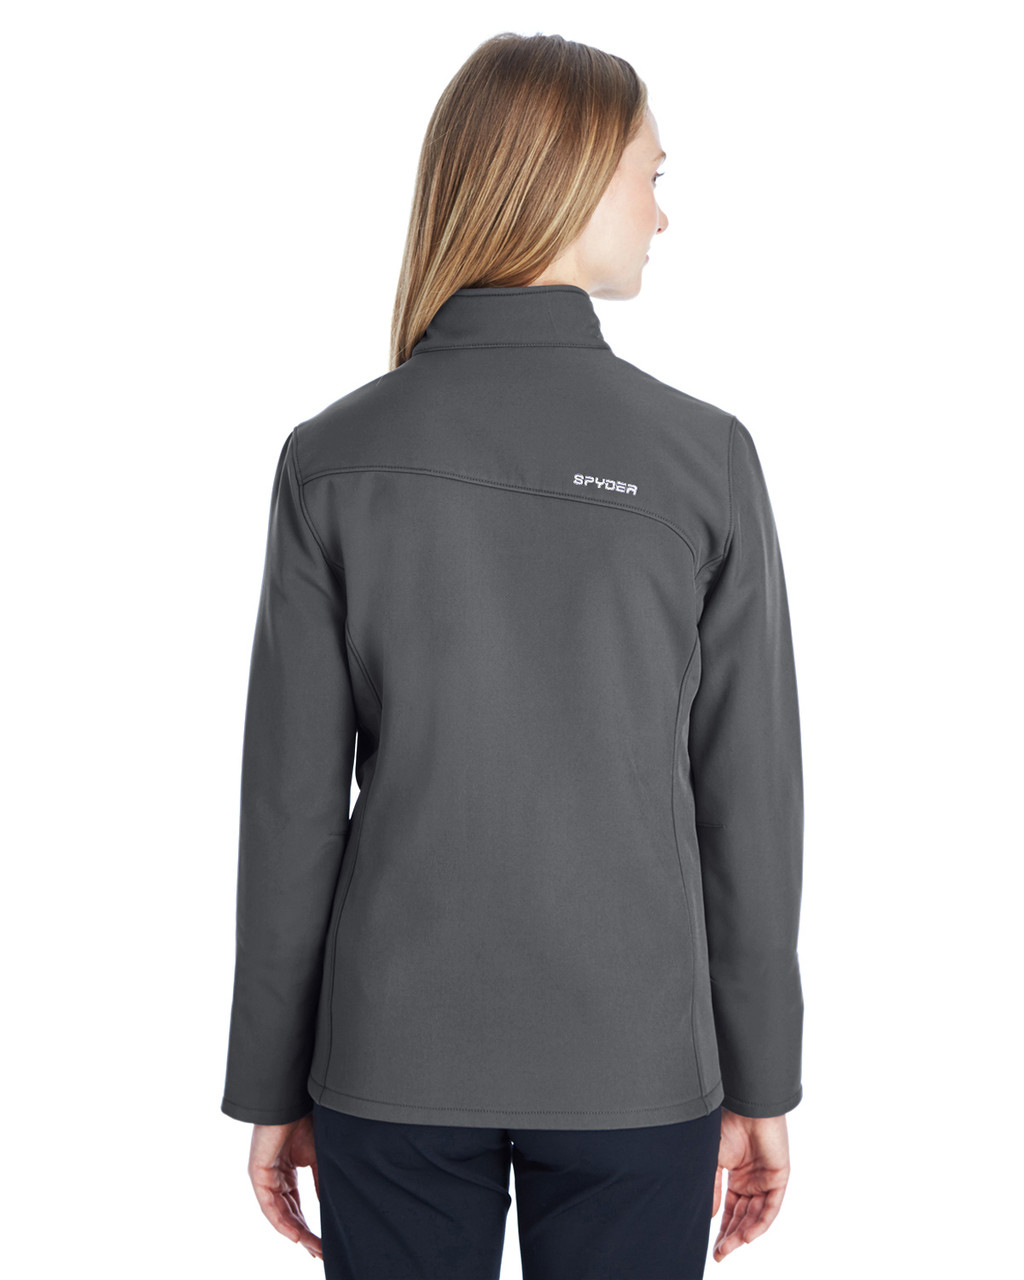 Polar/White, Back - 187337 Spyder Ladies' Transport Softshell Jacket | BlankClothing.ca